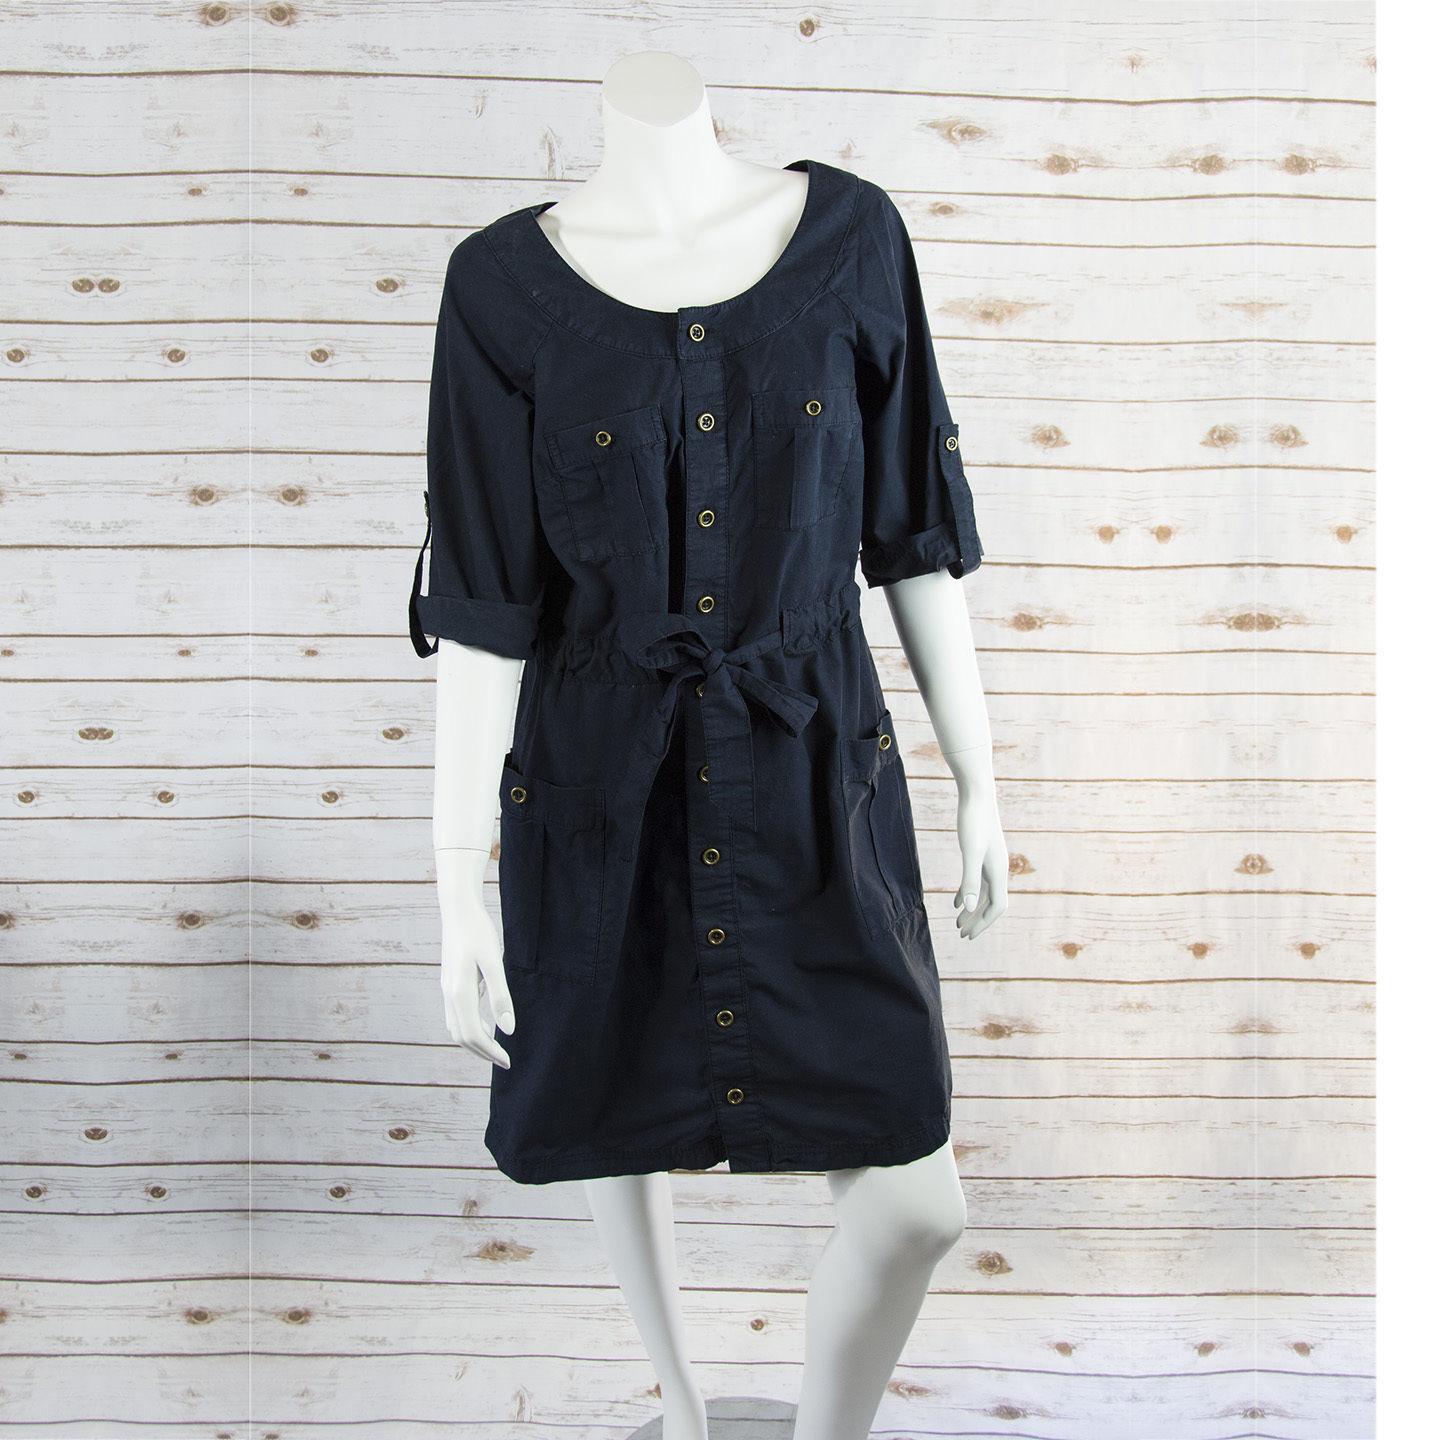 ANN TAYLOR LOFT sz M womens roll up sleeves dark blue shirt dress EUC (DA06)